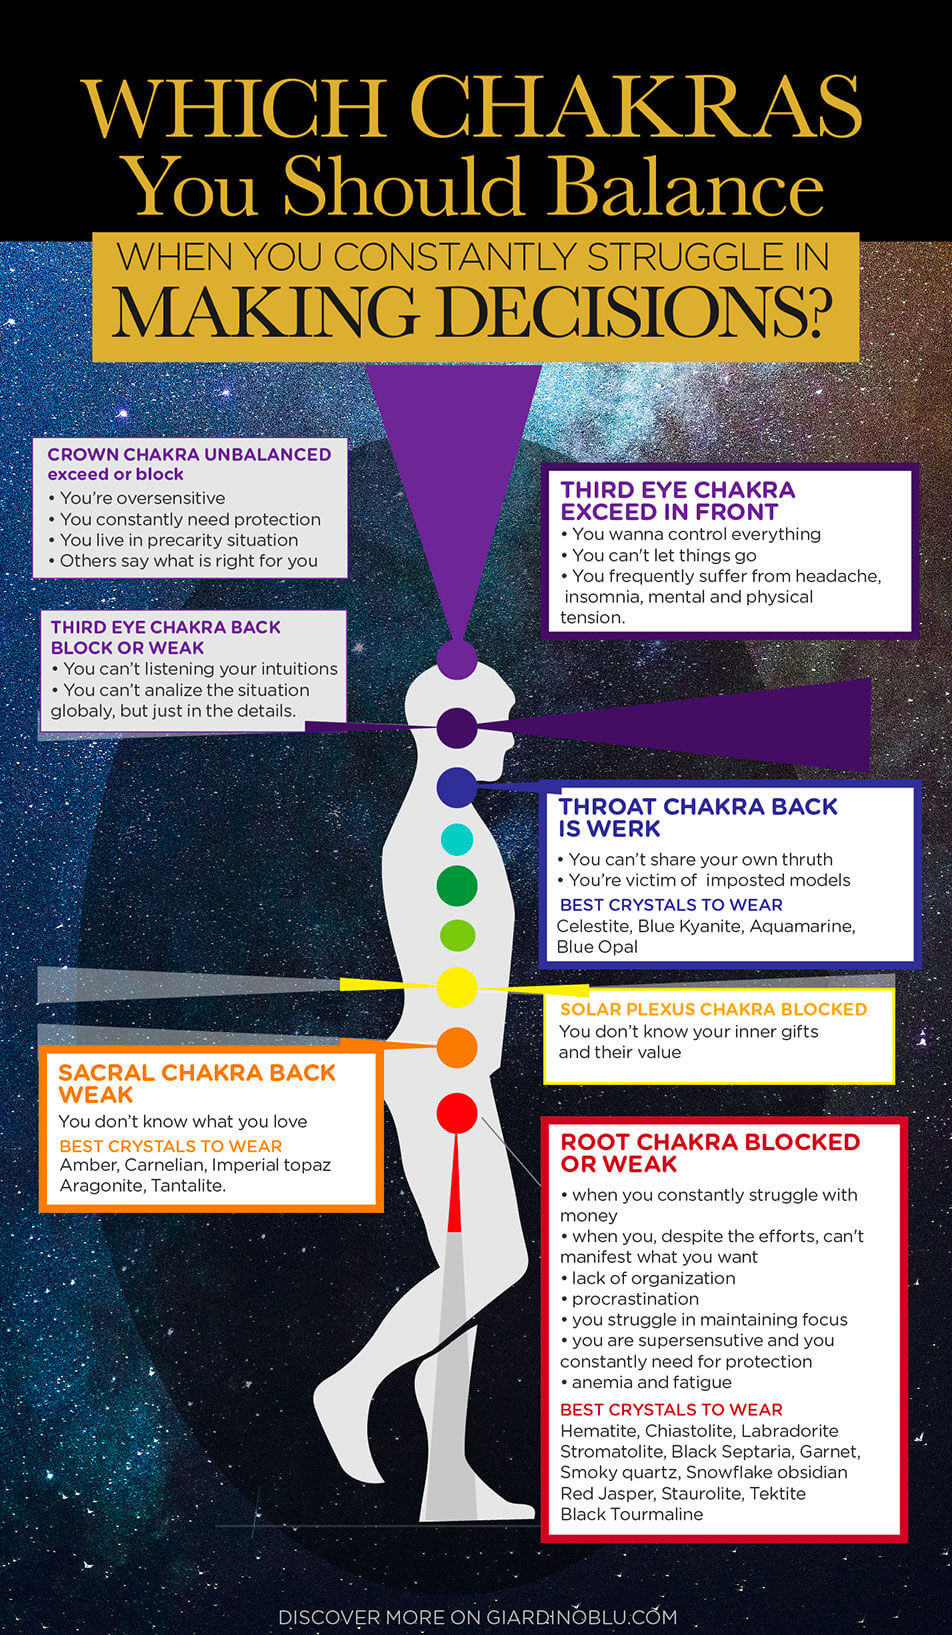 Best Crystals to Wear & Chakra to Heal if You Struggle in Making Meaningful Decisions